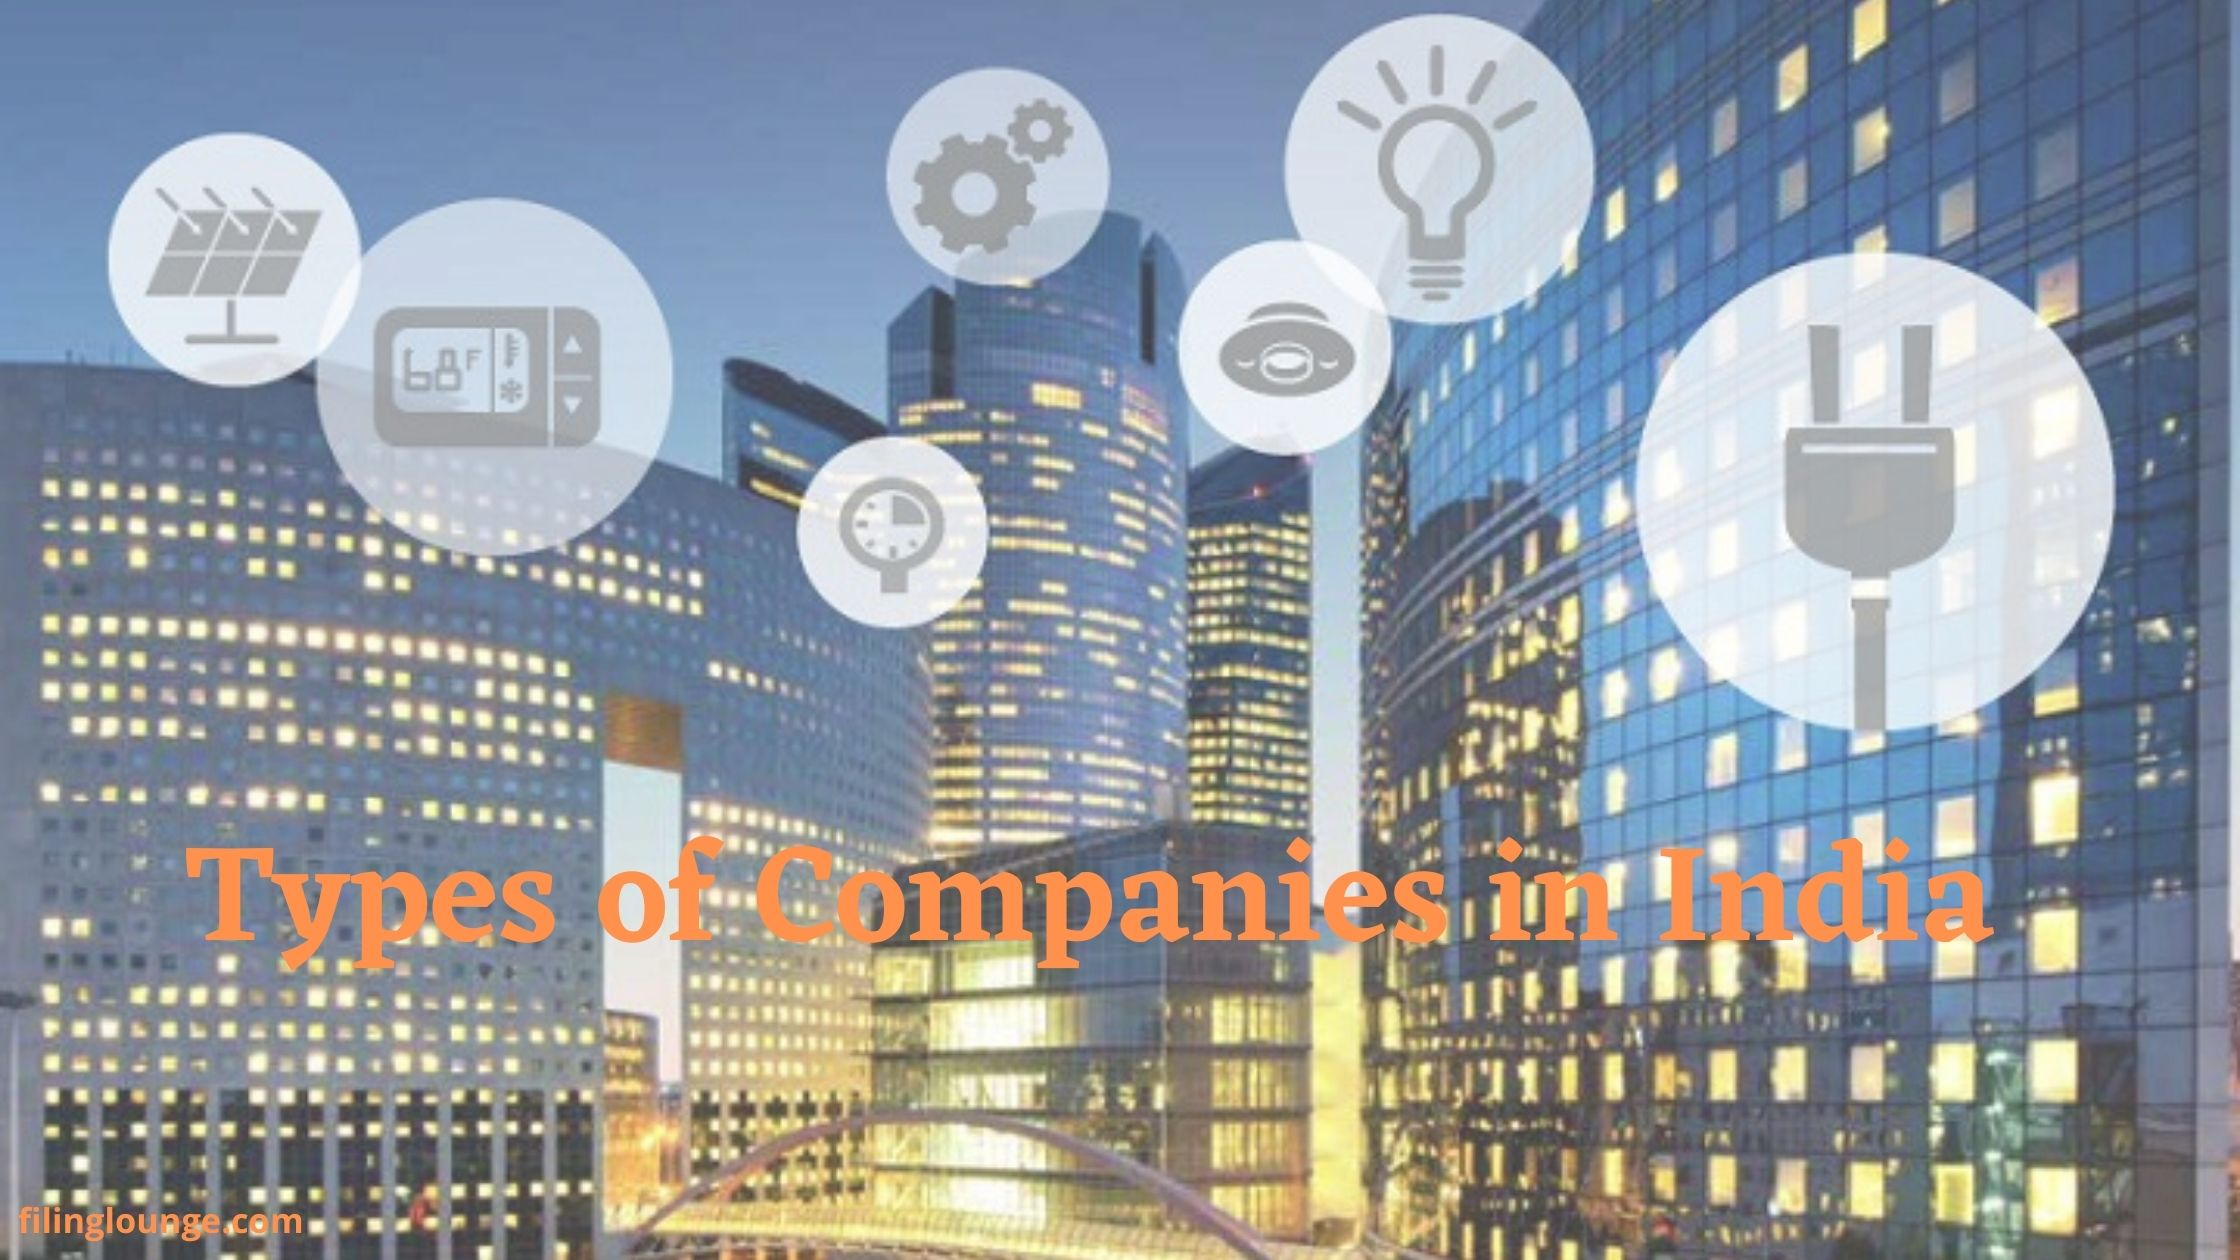 Types of Companies in India